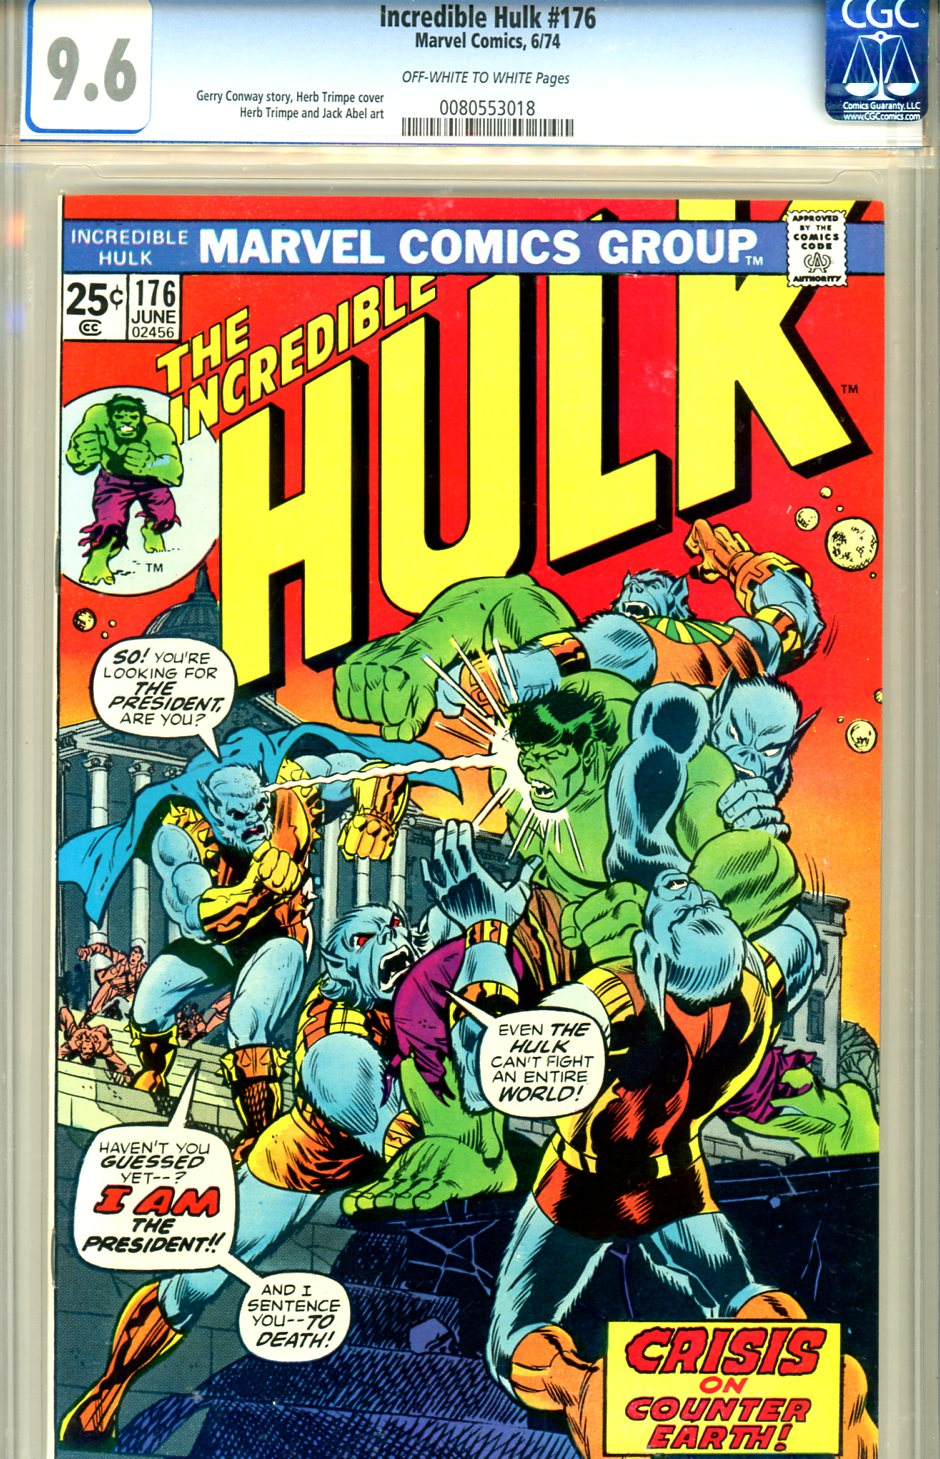 Incredible Hulk #176 CGC 9.6 ow/w